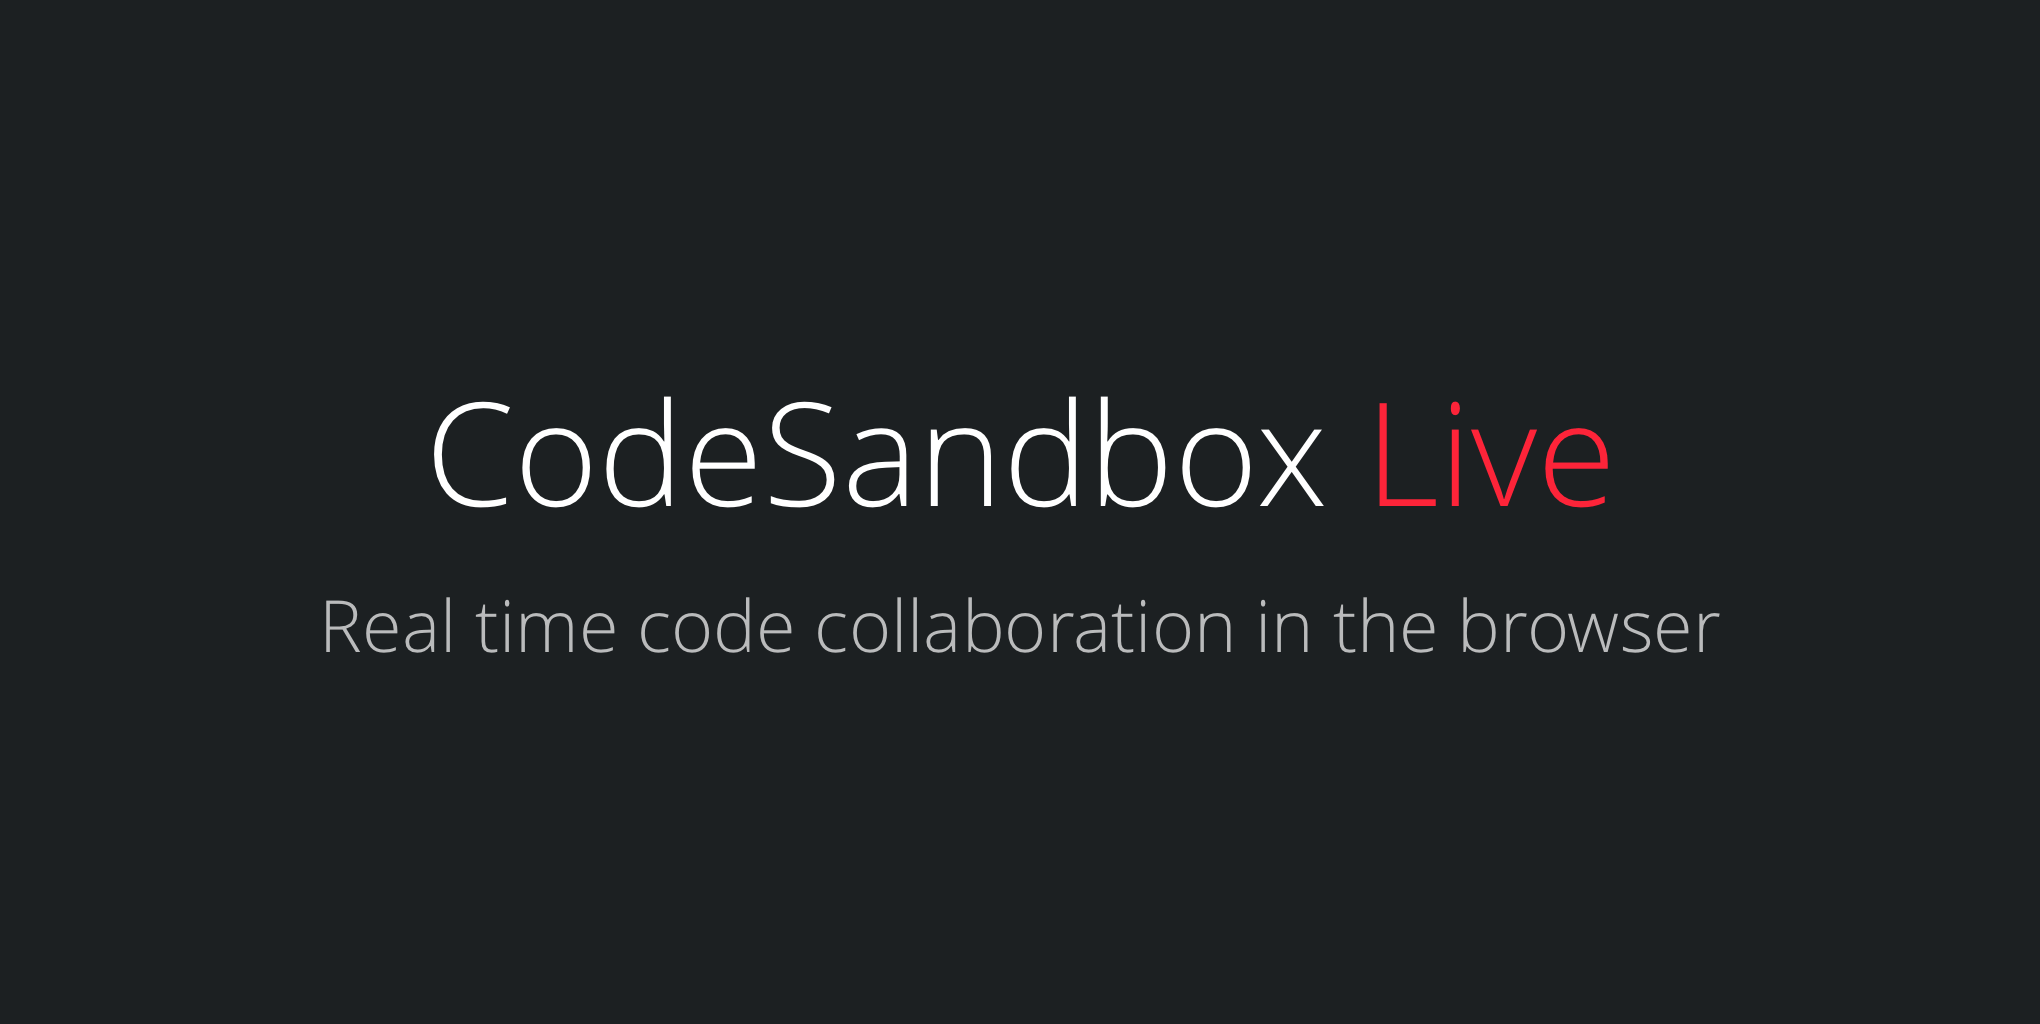 Introducing CodeSandbox Live — real time code collaboration in the browser